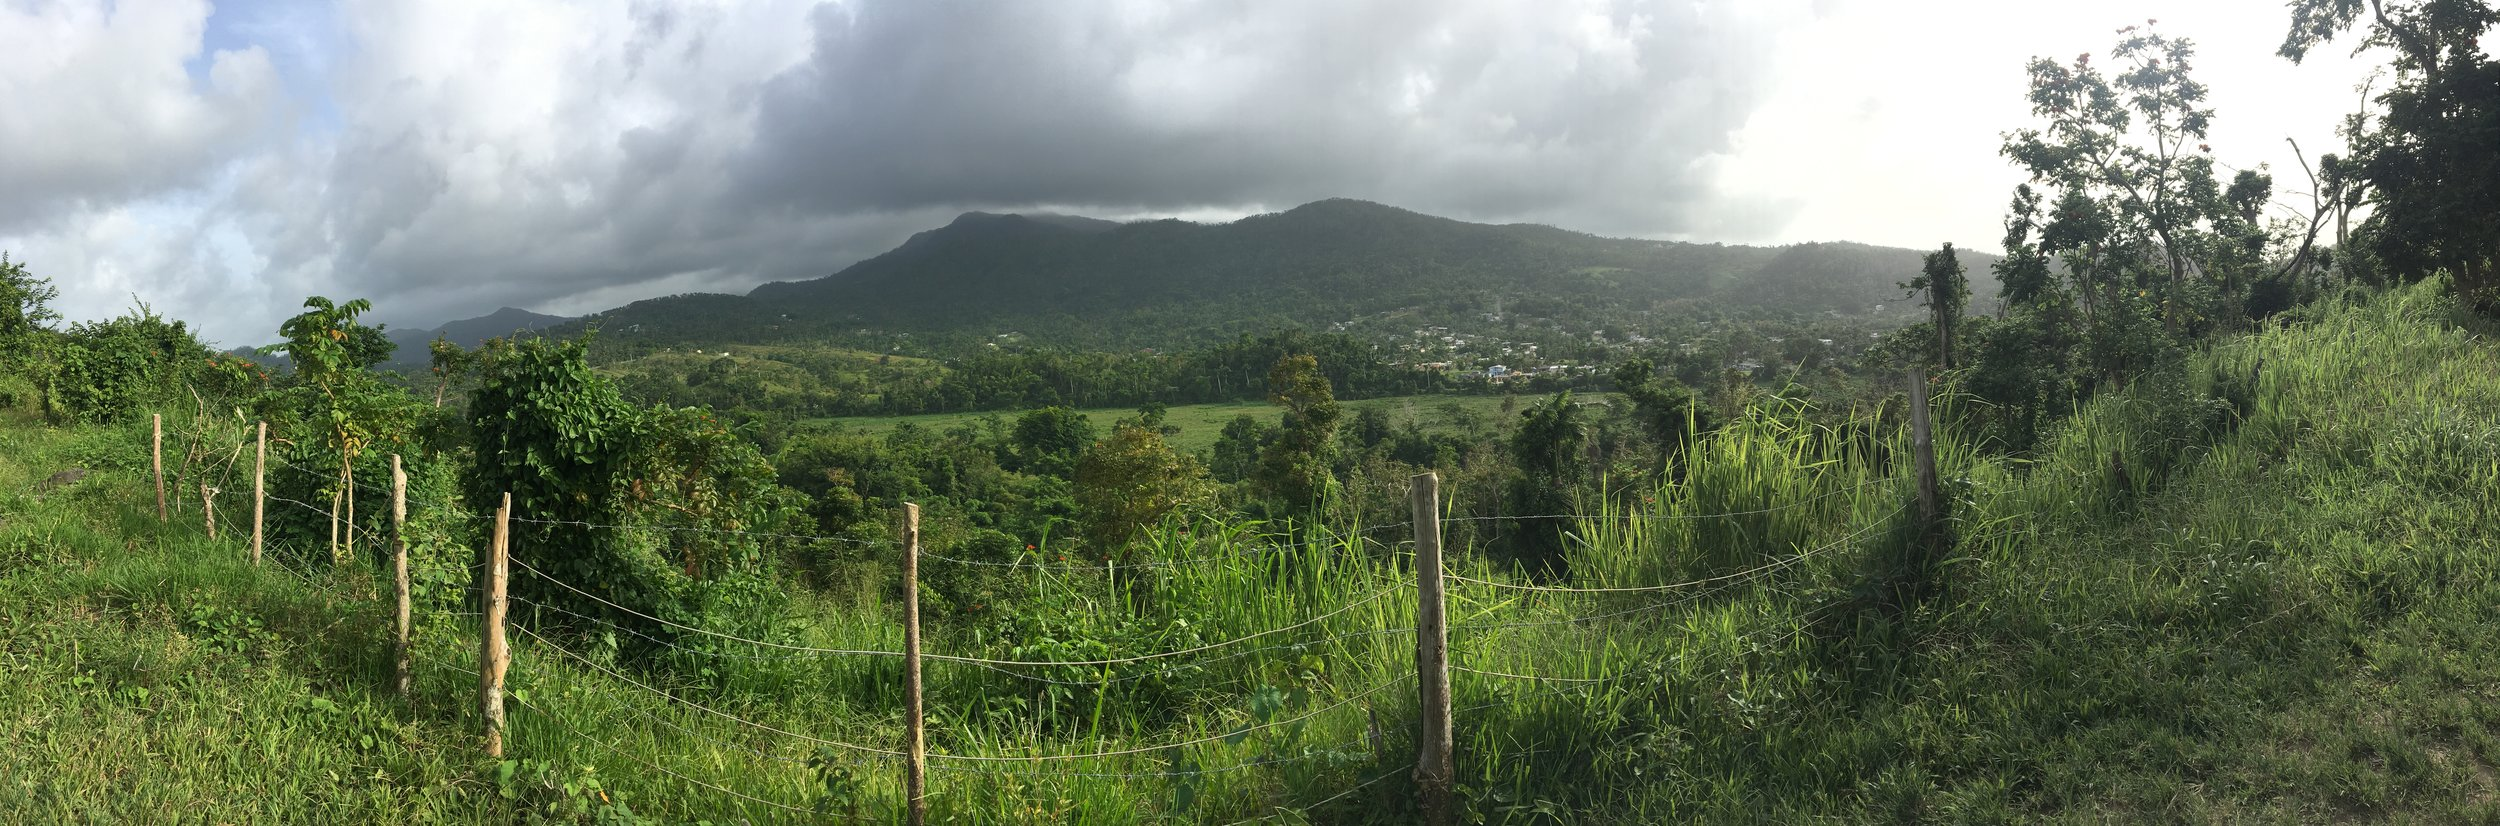 Stop 1: Looking south toward the Sierra Luquillo Mountains and El Yunque National Forest